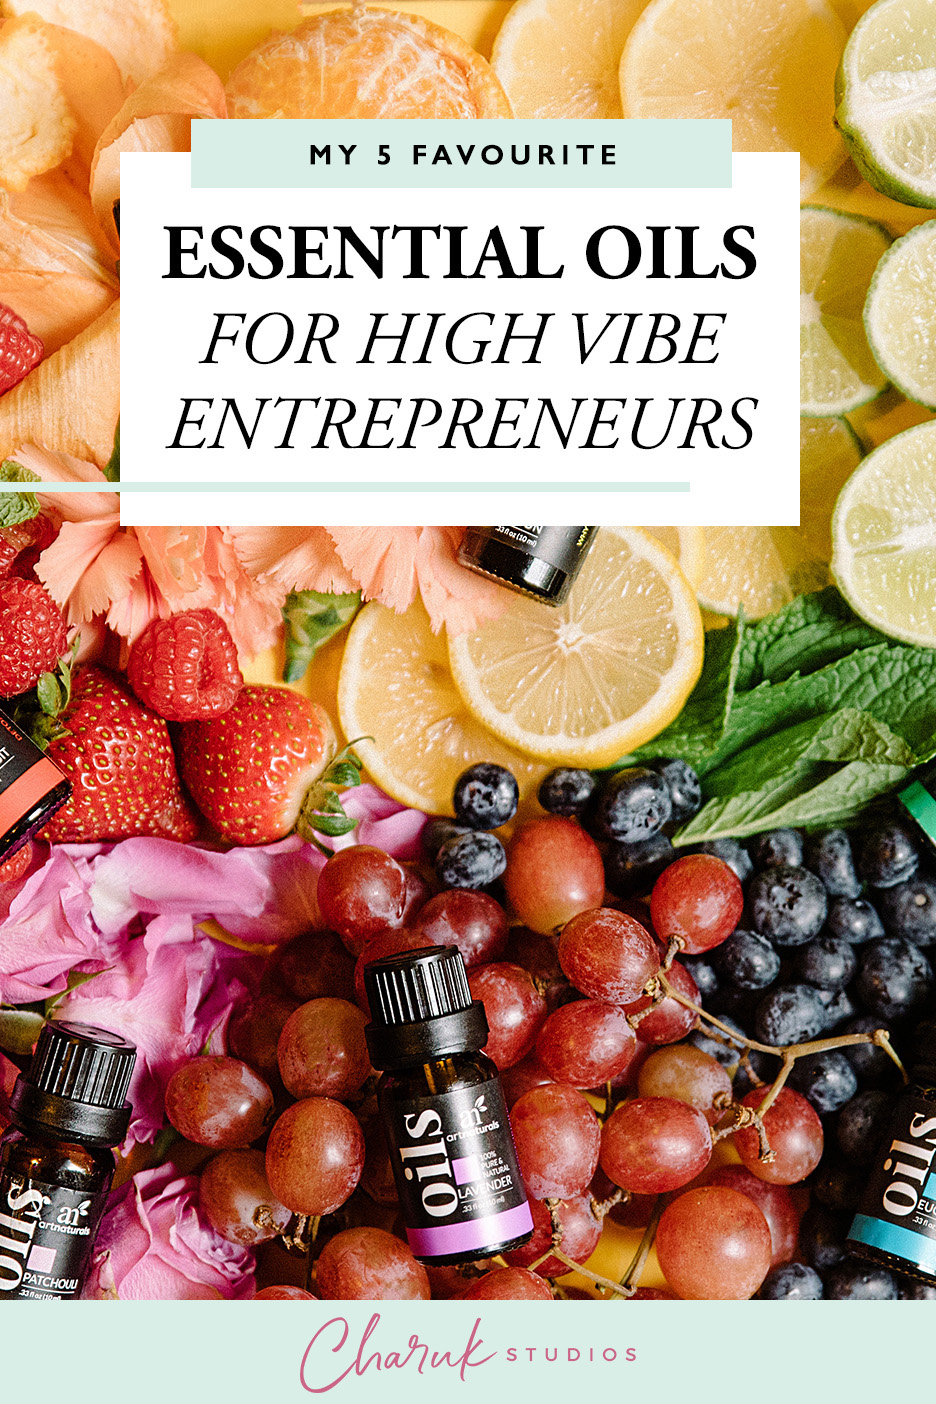 My 5 Favourite Essential Oils for High Vibe Entrepreneurs by Charuk Studios